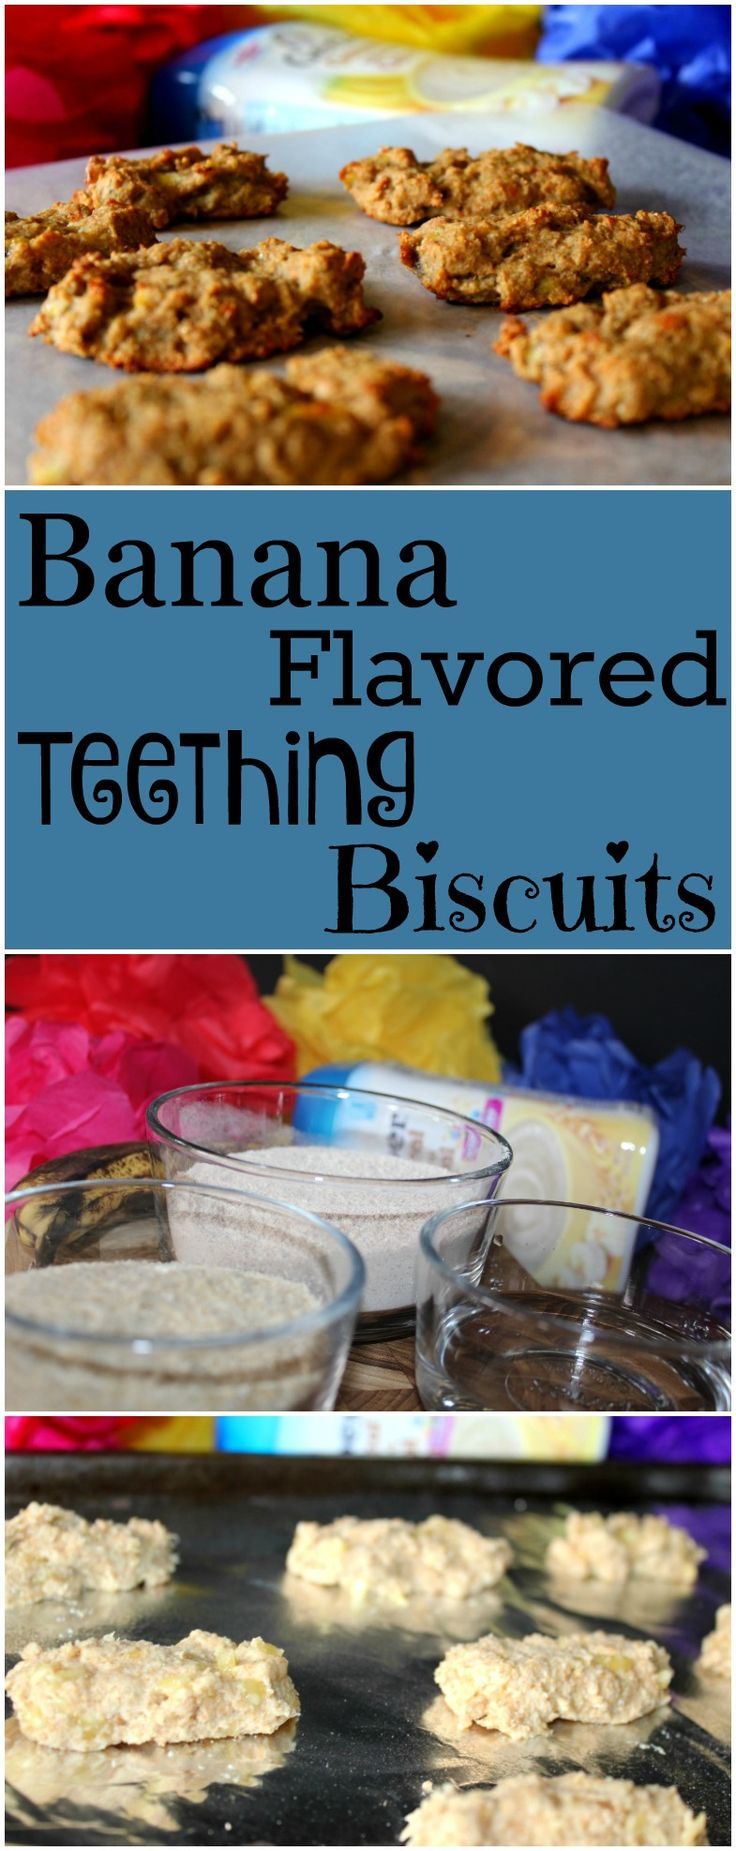 Banana Flavored Teething Biscuits Made with Gerber Cereal #CookingwithGerber #ad